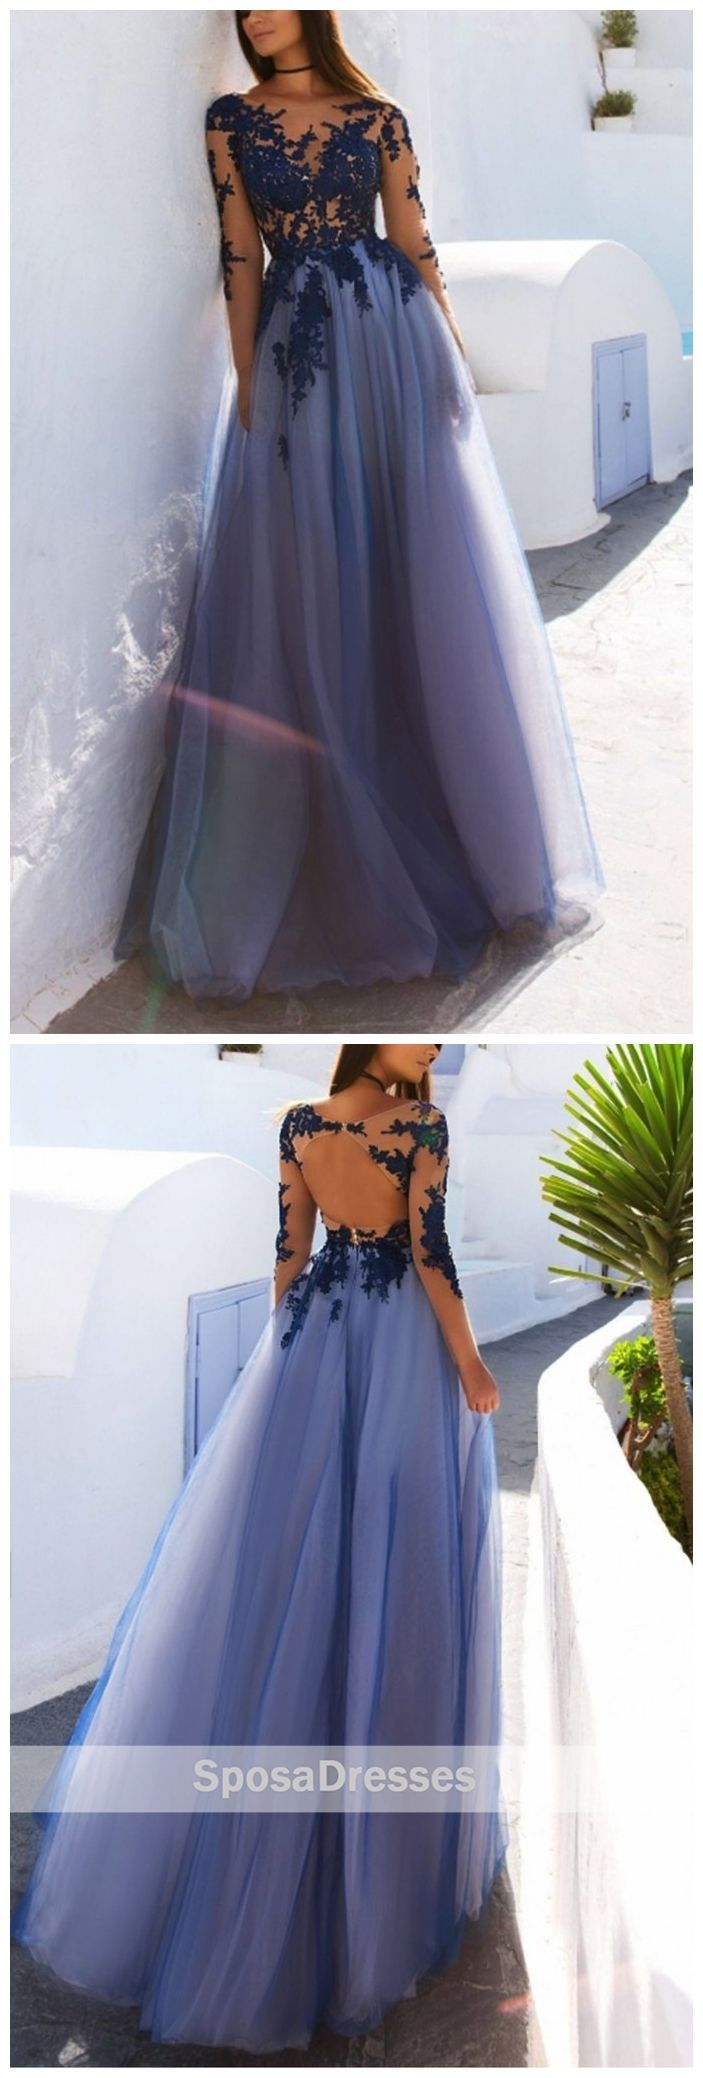 Sexy See Through Blue Lace Long Sleeve Open Back Custom Long Evening Prom Dresses, 17482 #longpromdresses